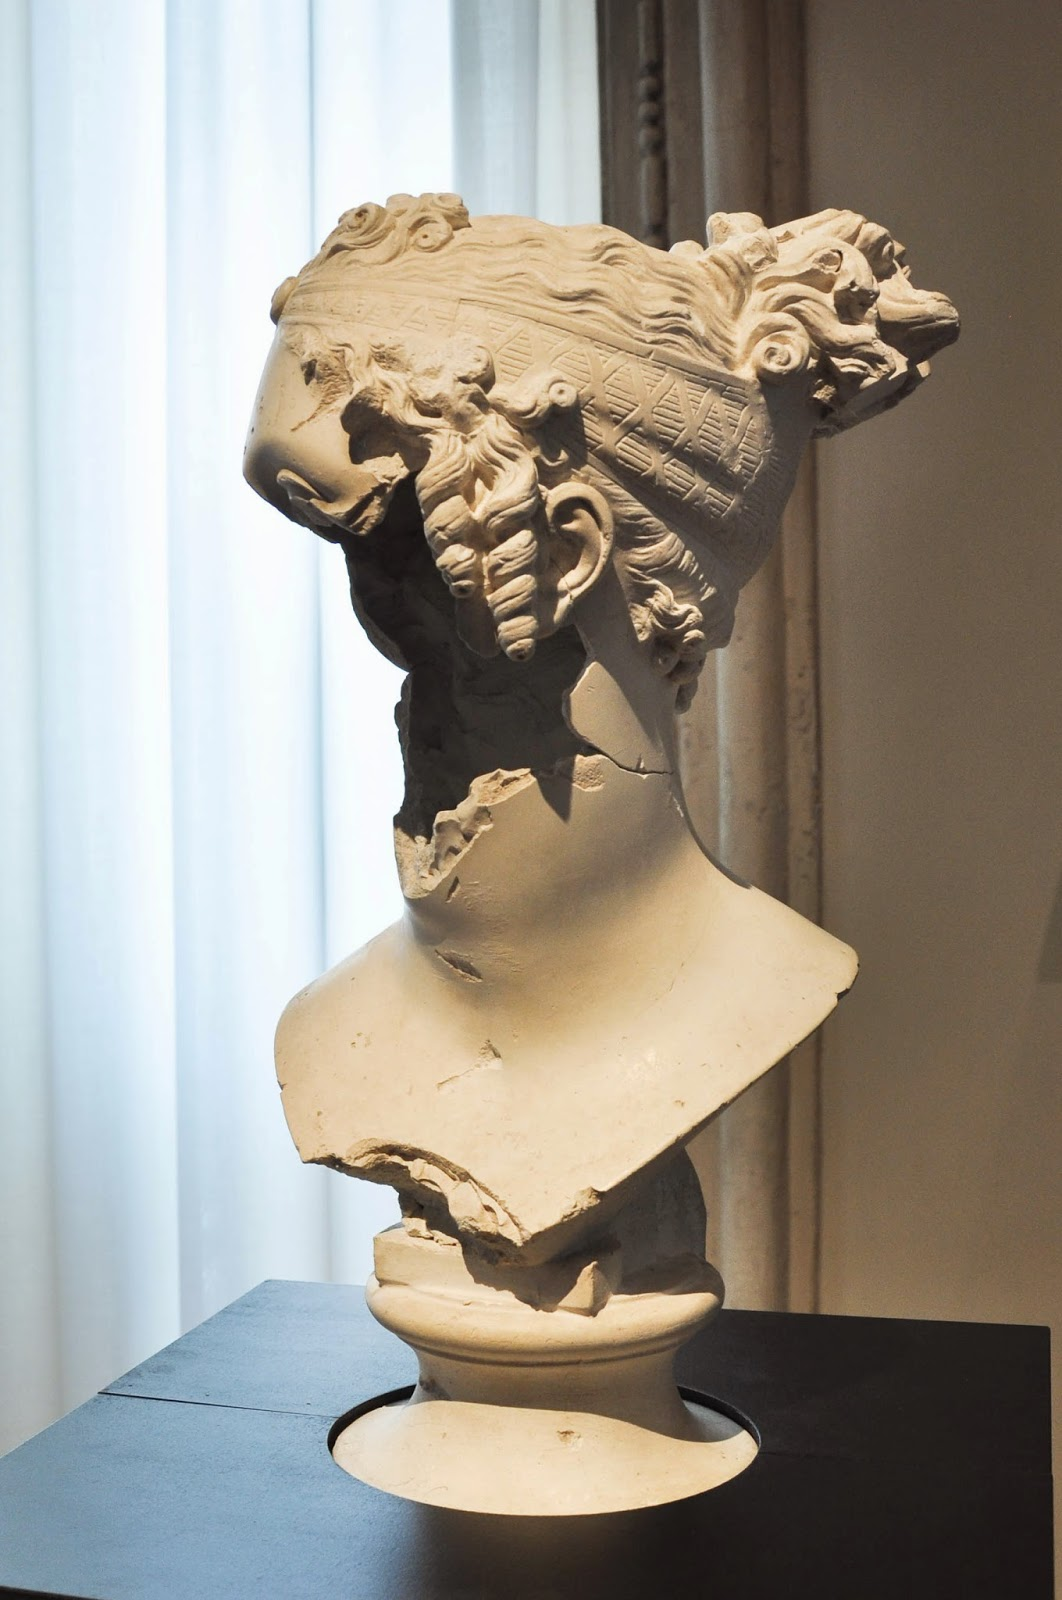 A bust by Antonio Canova, damaged in the bombings of 1917, Gallerie D'Italia in Palazzo Leoni Montanari, Vicenza, Italy